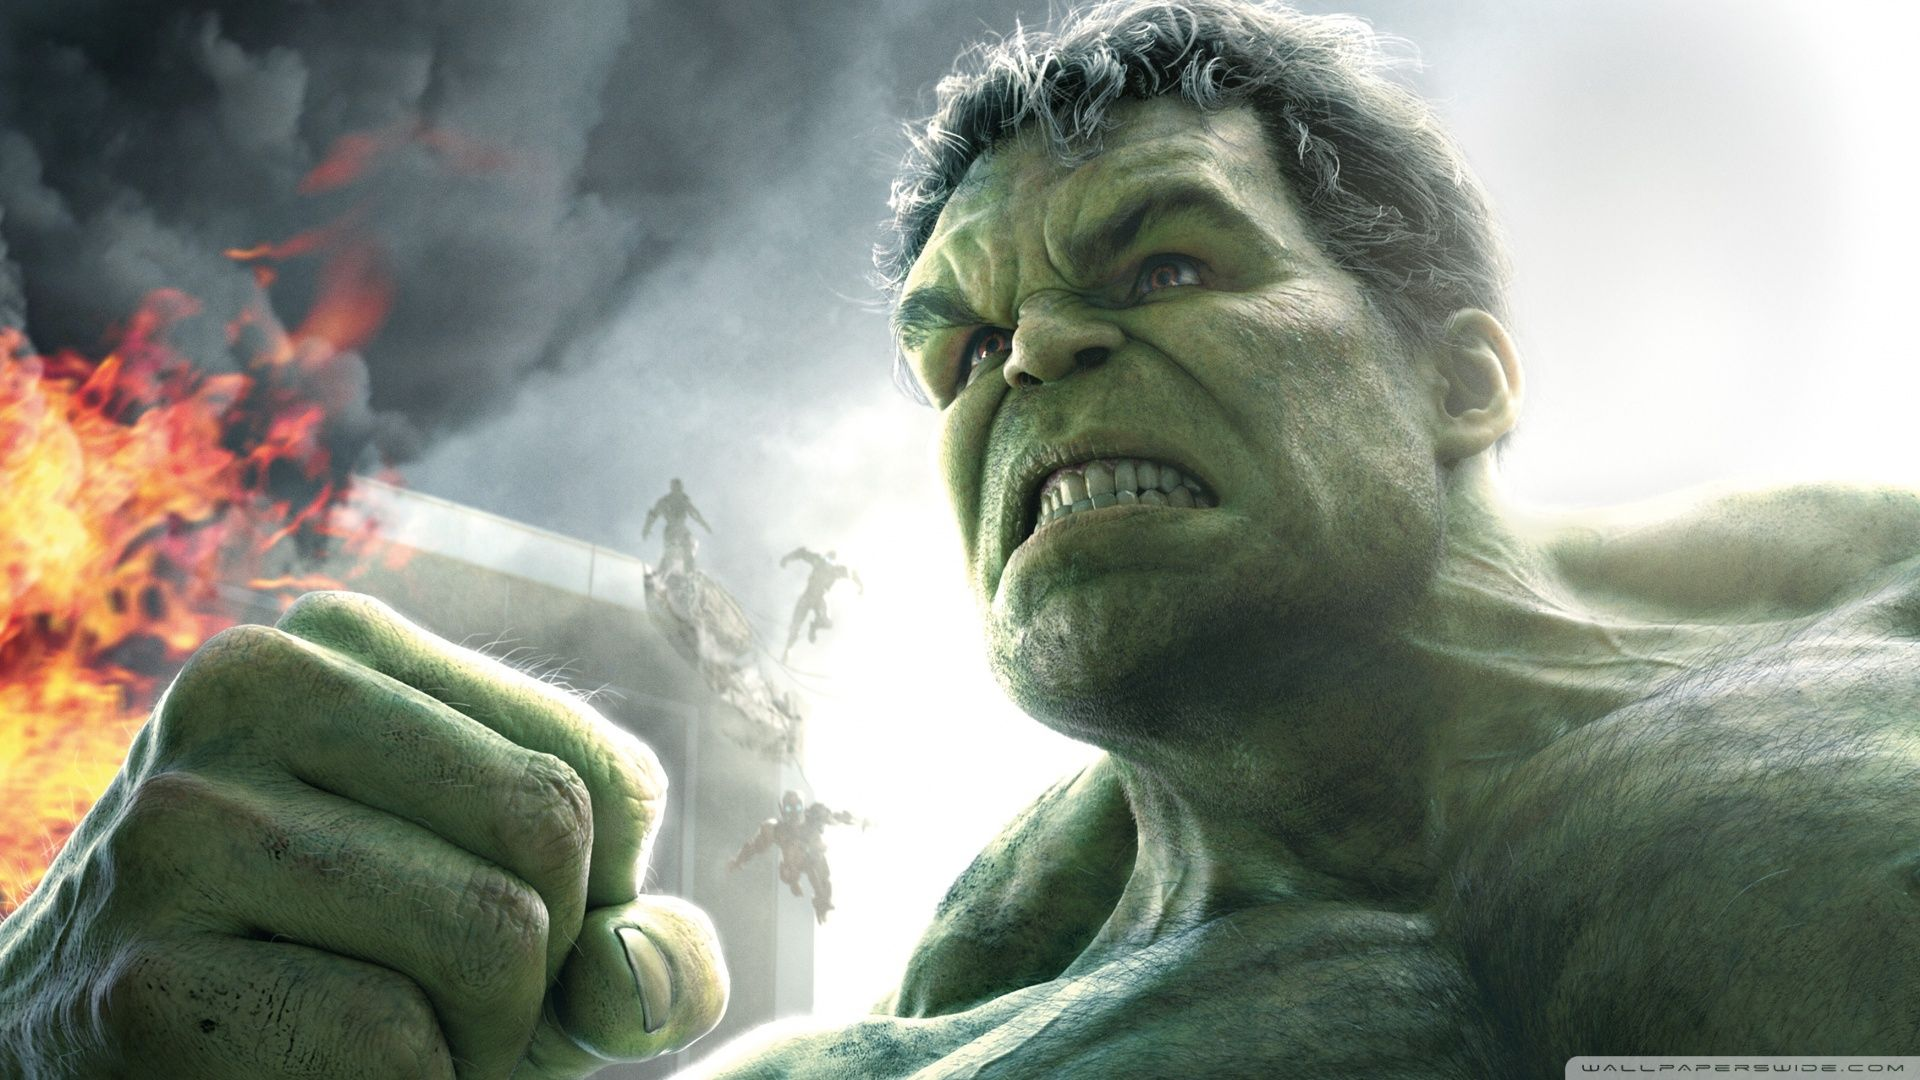 hulk wallpaper hulk wallpaper download hd wallpapers movie | 3d